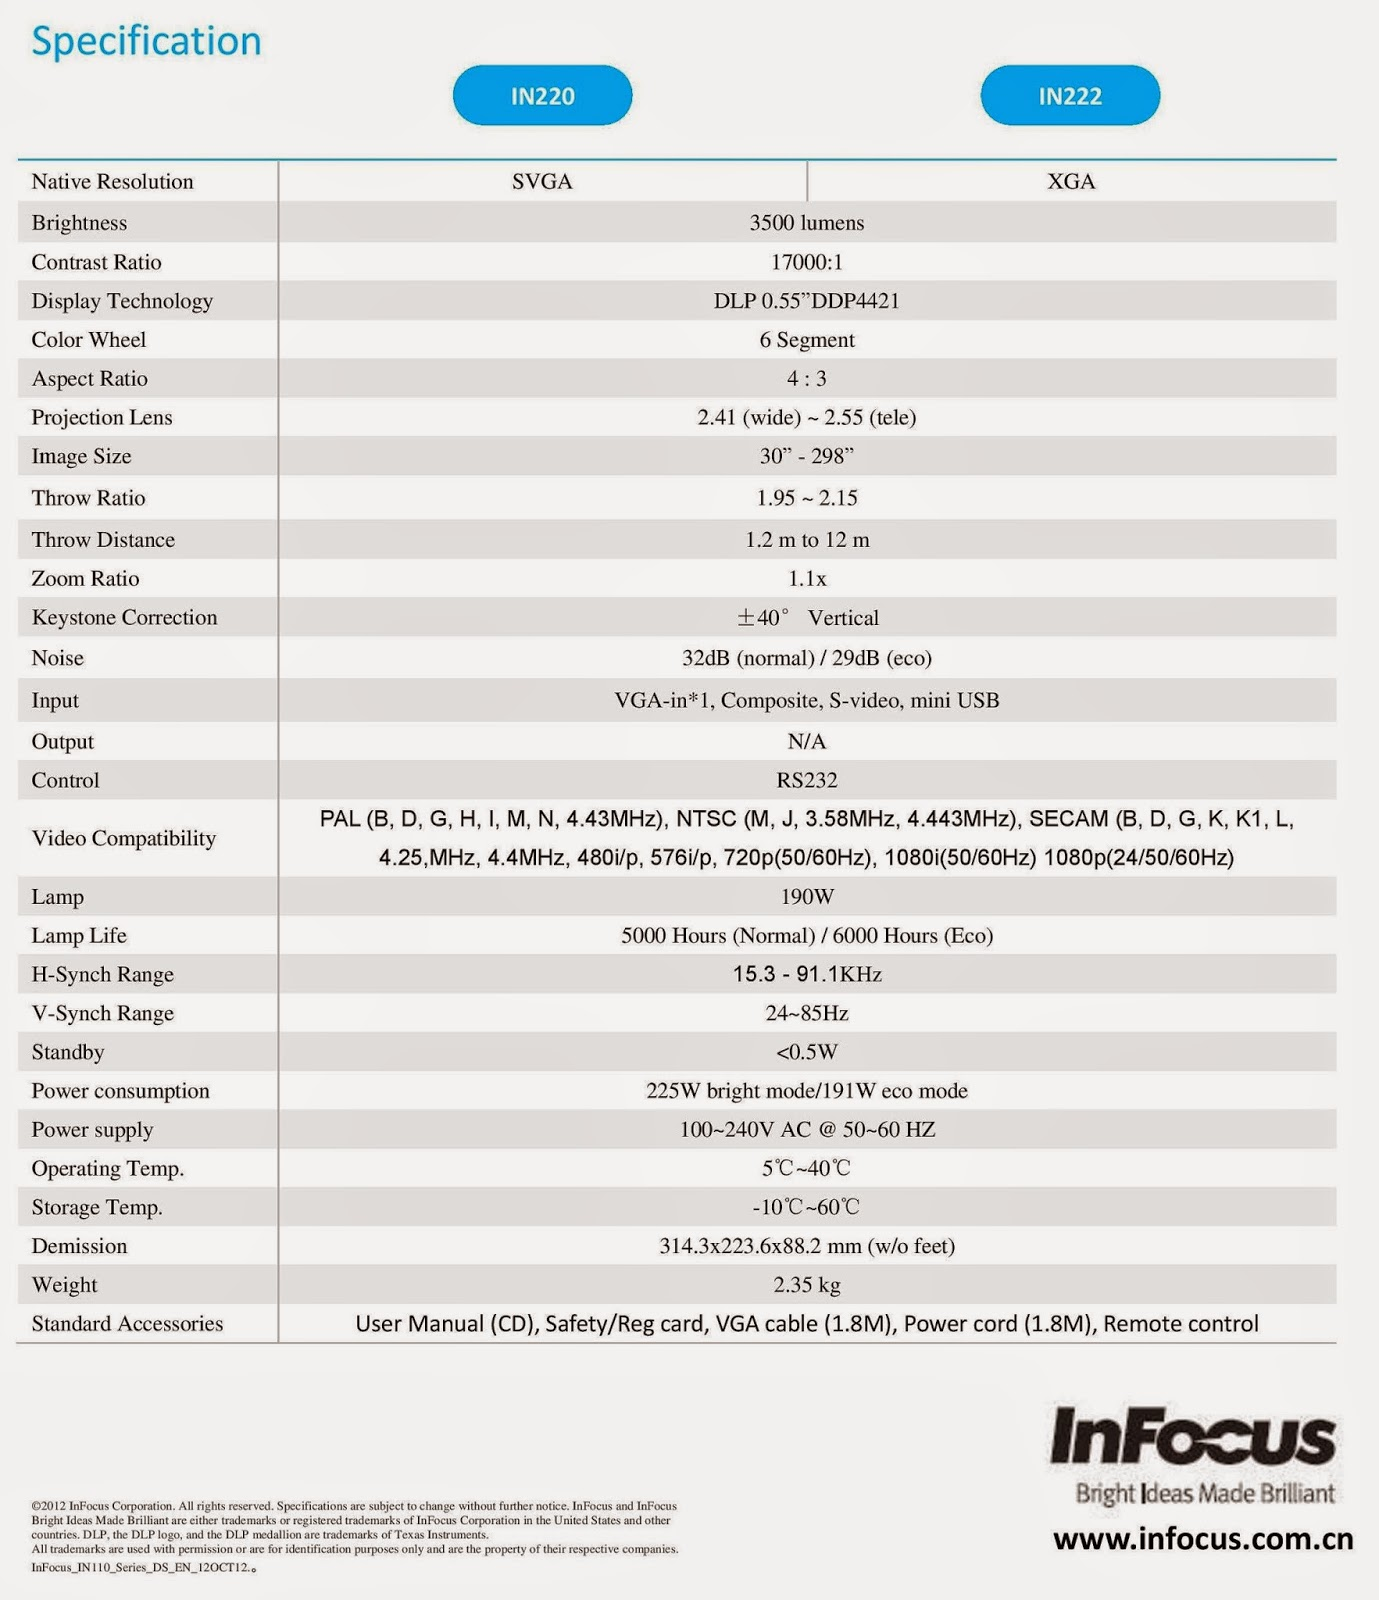 Infocus In222 Projector Simple Unbelievable Low Price Super Stable Cus In220 Cooling And Dusty Proof Systems Series Products Have Longer Life Time Default Free Performance Which Lower Down Keeping Operating Cost